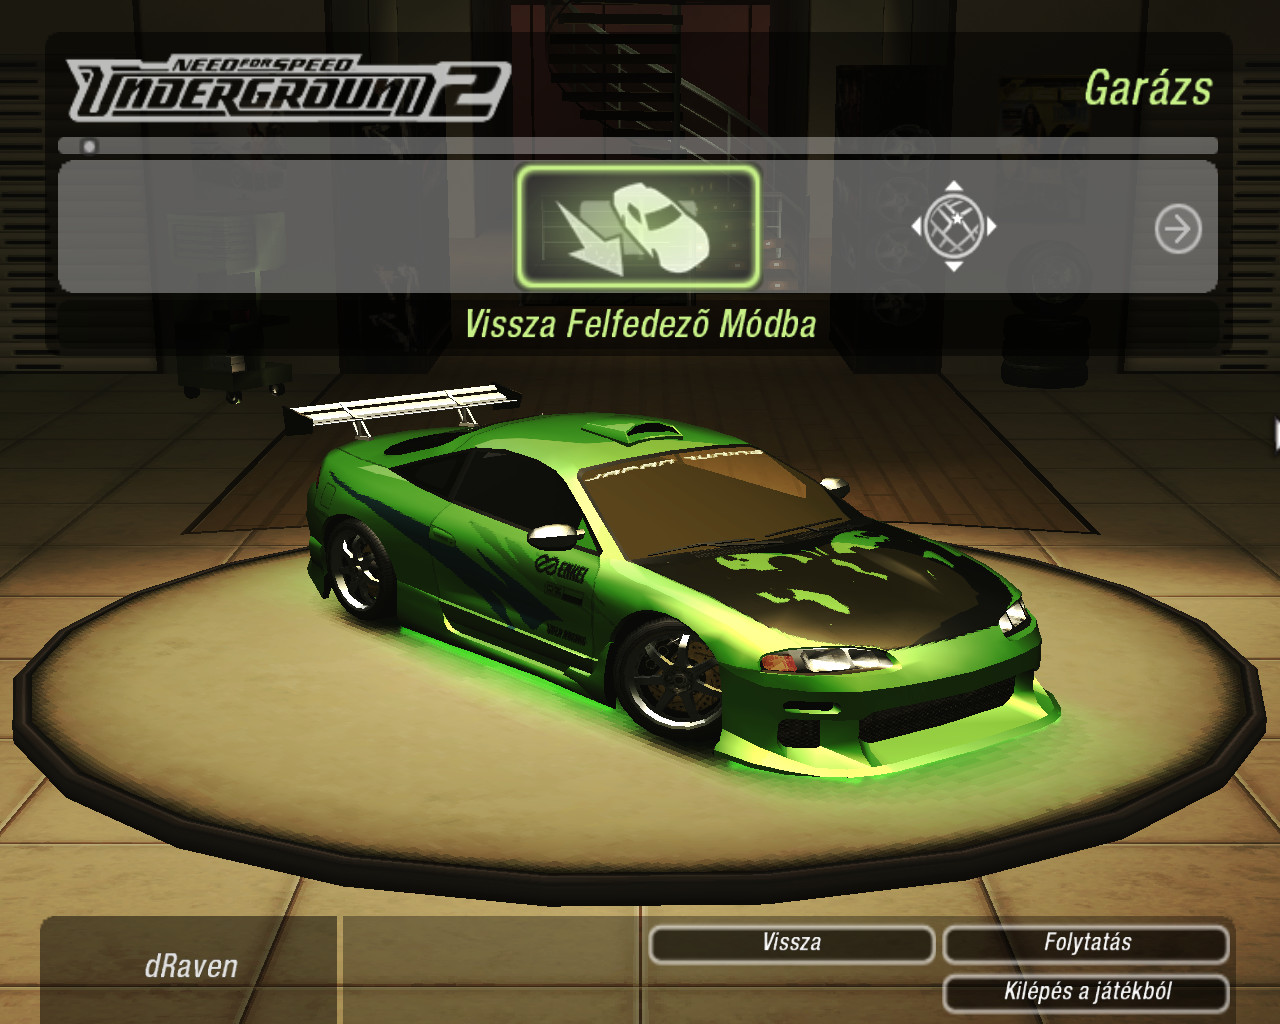 nfsu2 mitsubishi eclipse front by erickdraven89 nfsu2 mitsubishi eclipse front by erickdraven89 - Mitsubishi Eclipse Fast And Furious Wallpaper